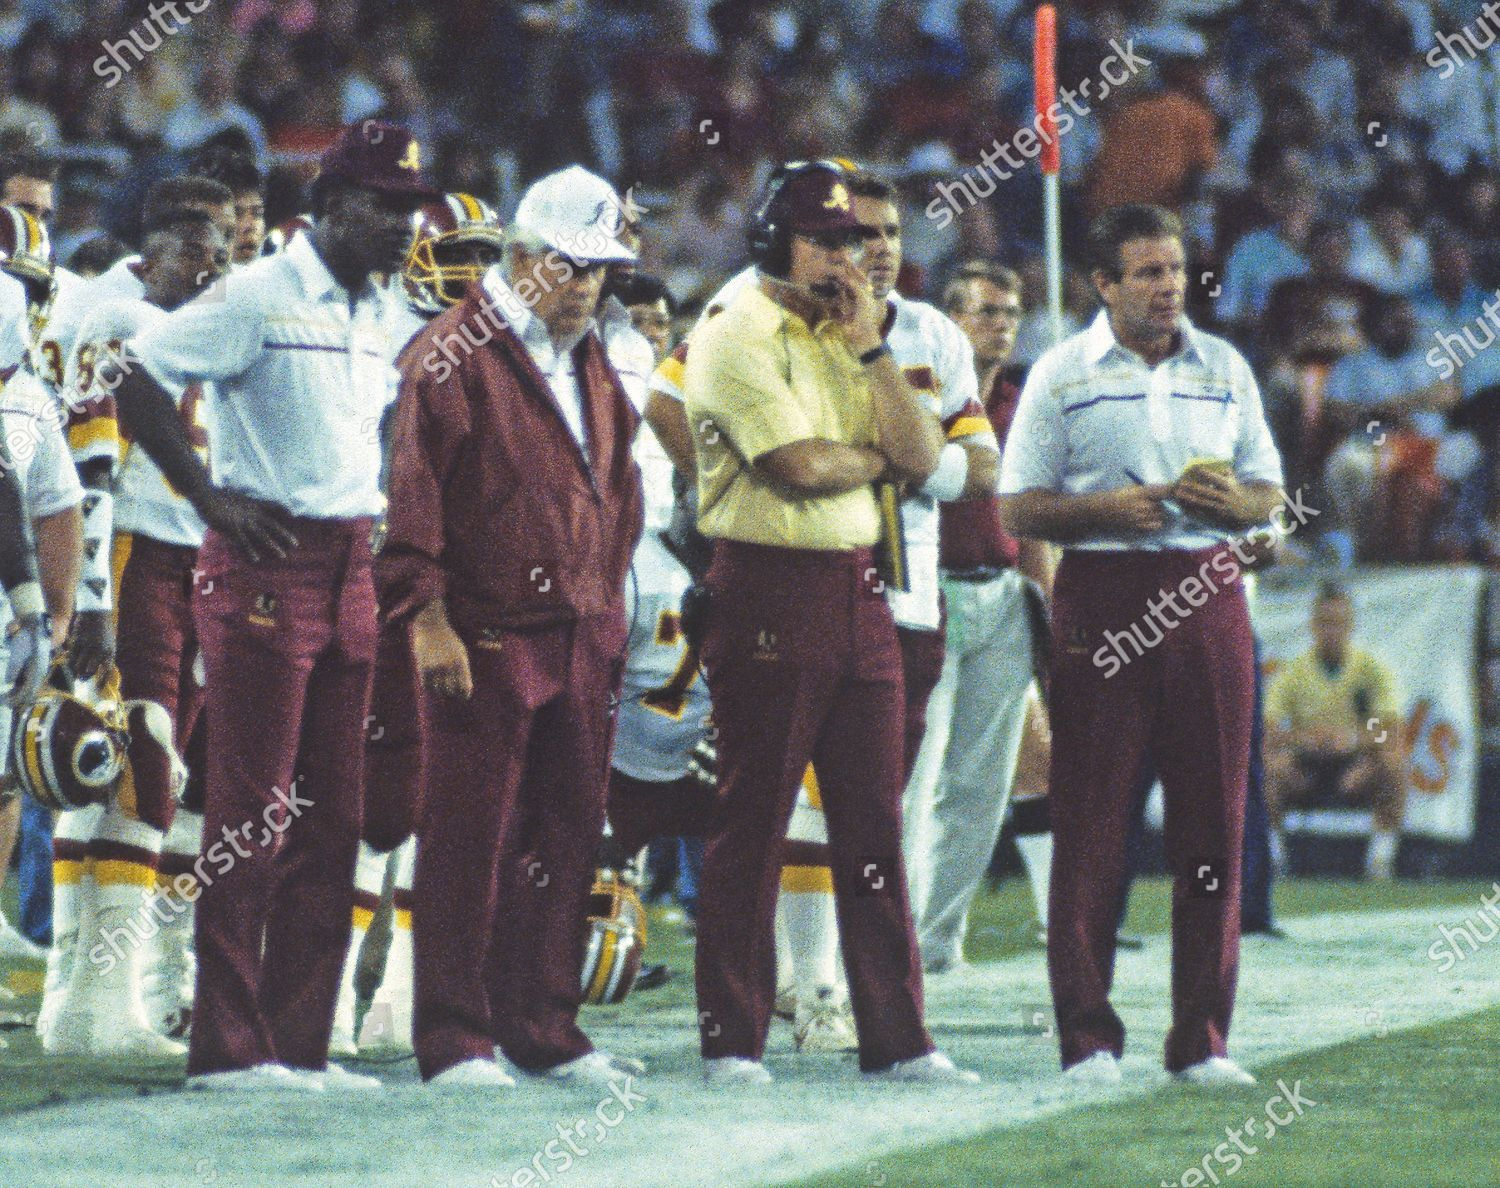 1989 Dolphins v. Redskins Pre-Season Game, Washington, District of Columbia, USA - 05 Aug 1989: стоковое фото